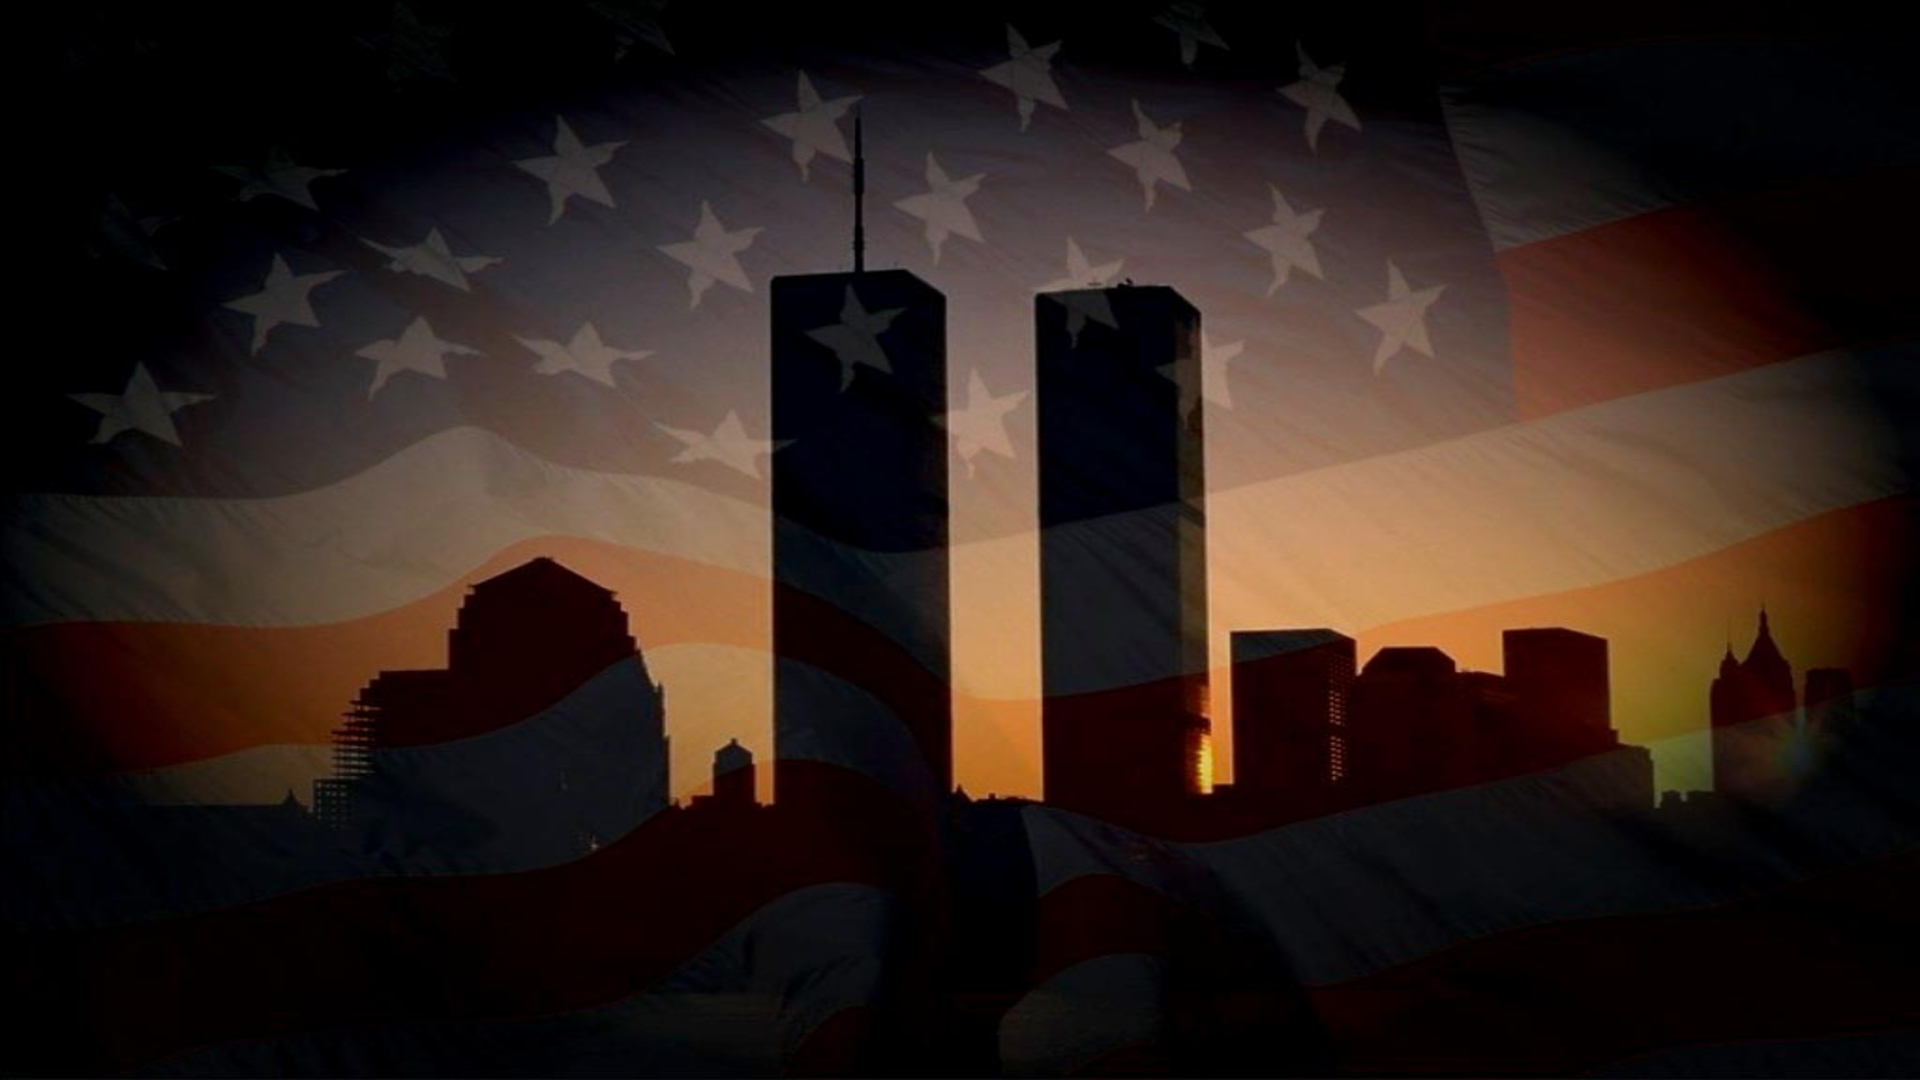 never forget ny 911 Desktop and mobile wallpaper Wallippo 1920x1080